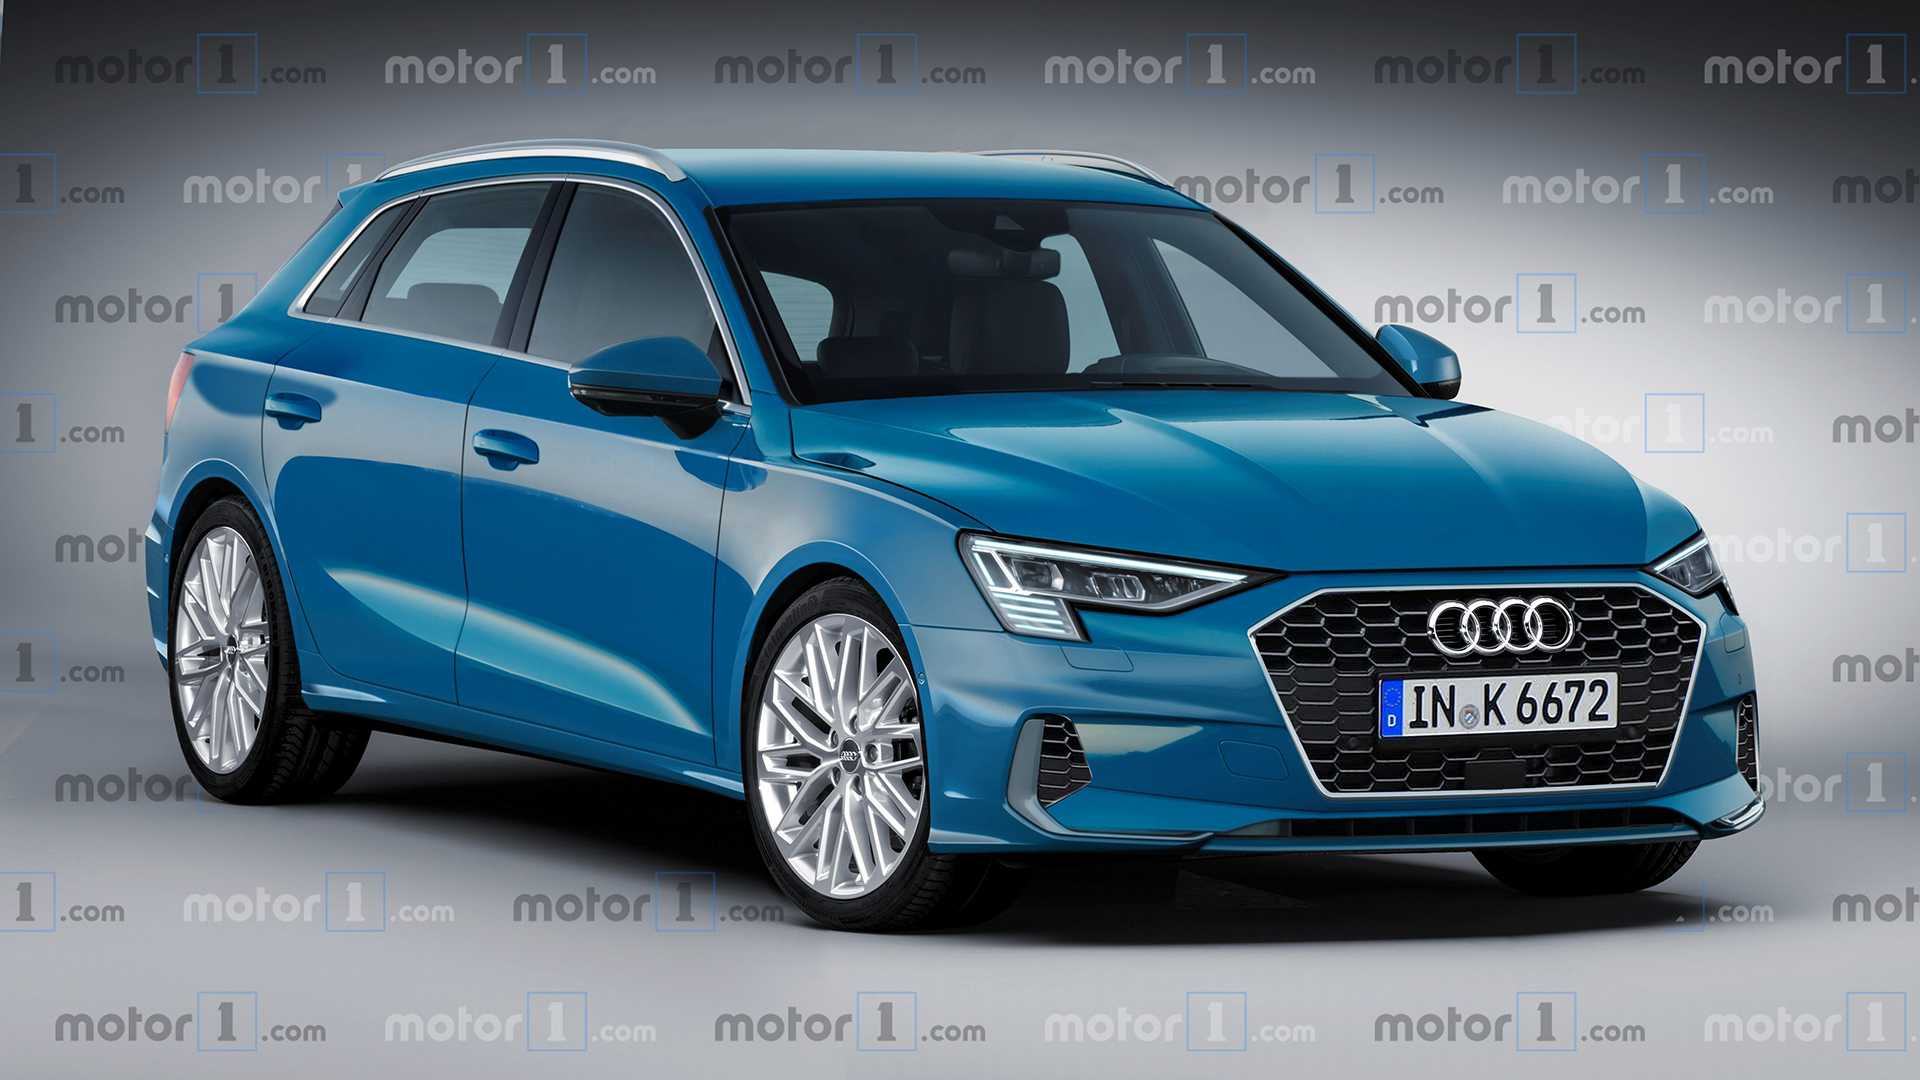 59 The Best 2020 Audi A3 Sportback Usa Redesign And Concept